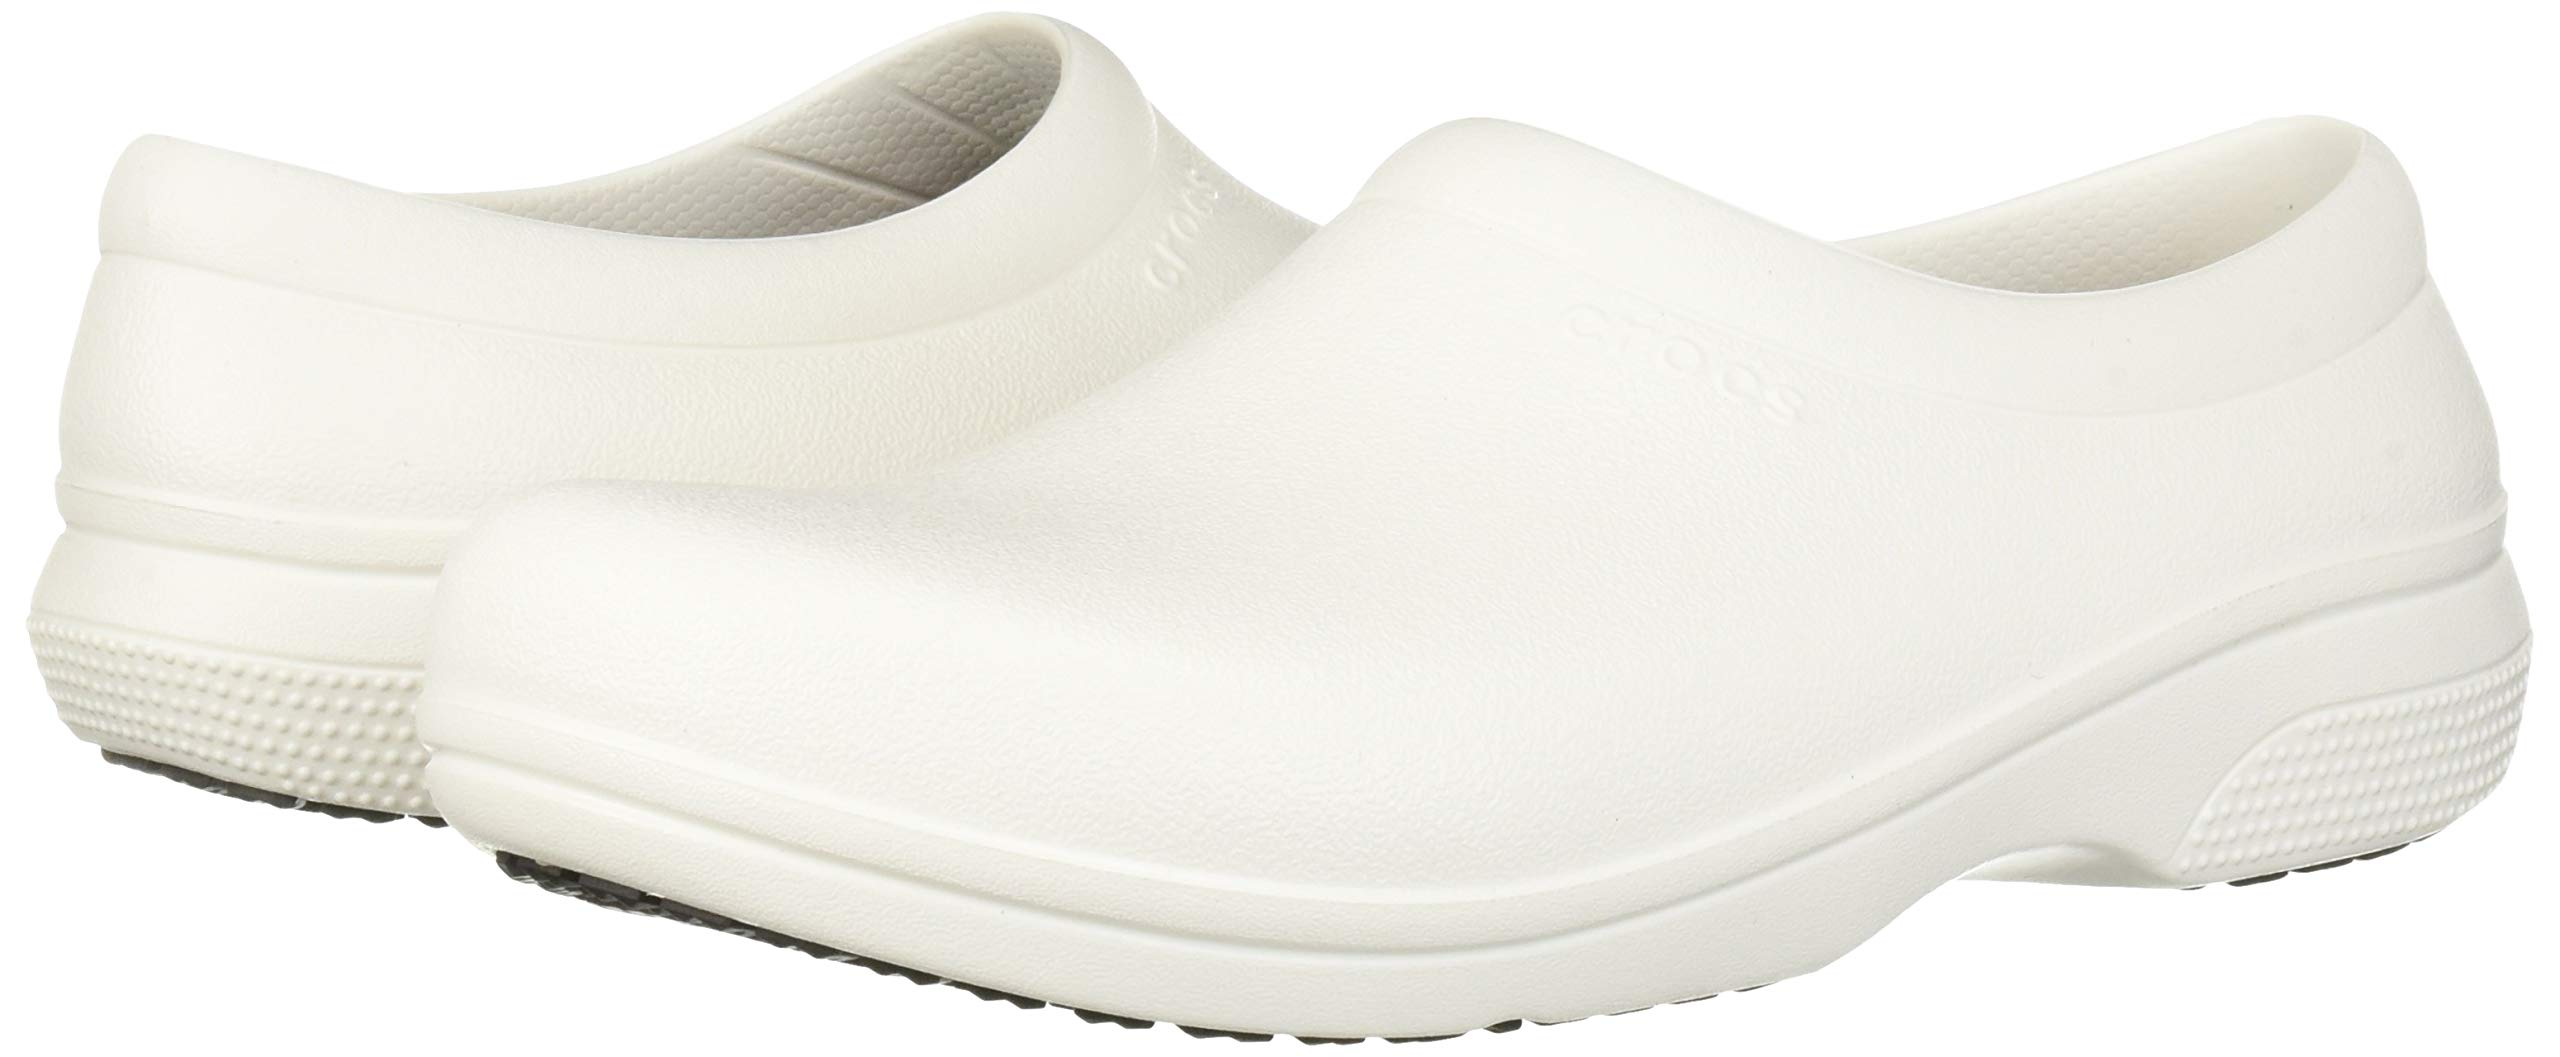 Crocs Men's and Women's On The Clock Work Slip Resistant Work Shoe | Great Nursing or Chef Shoe